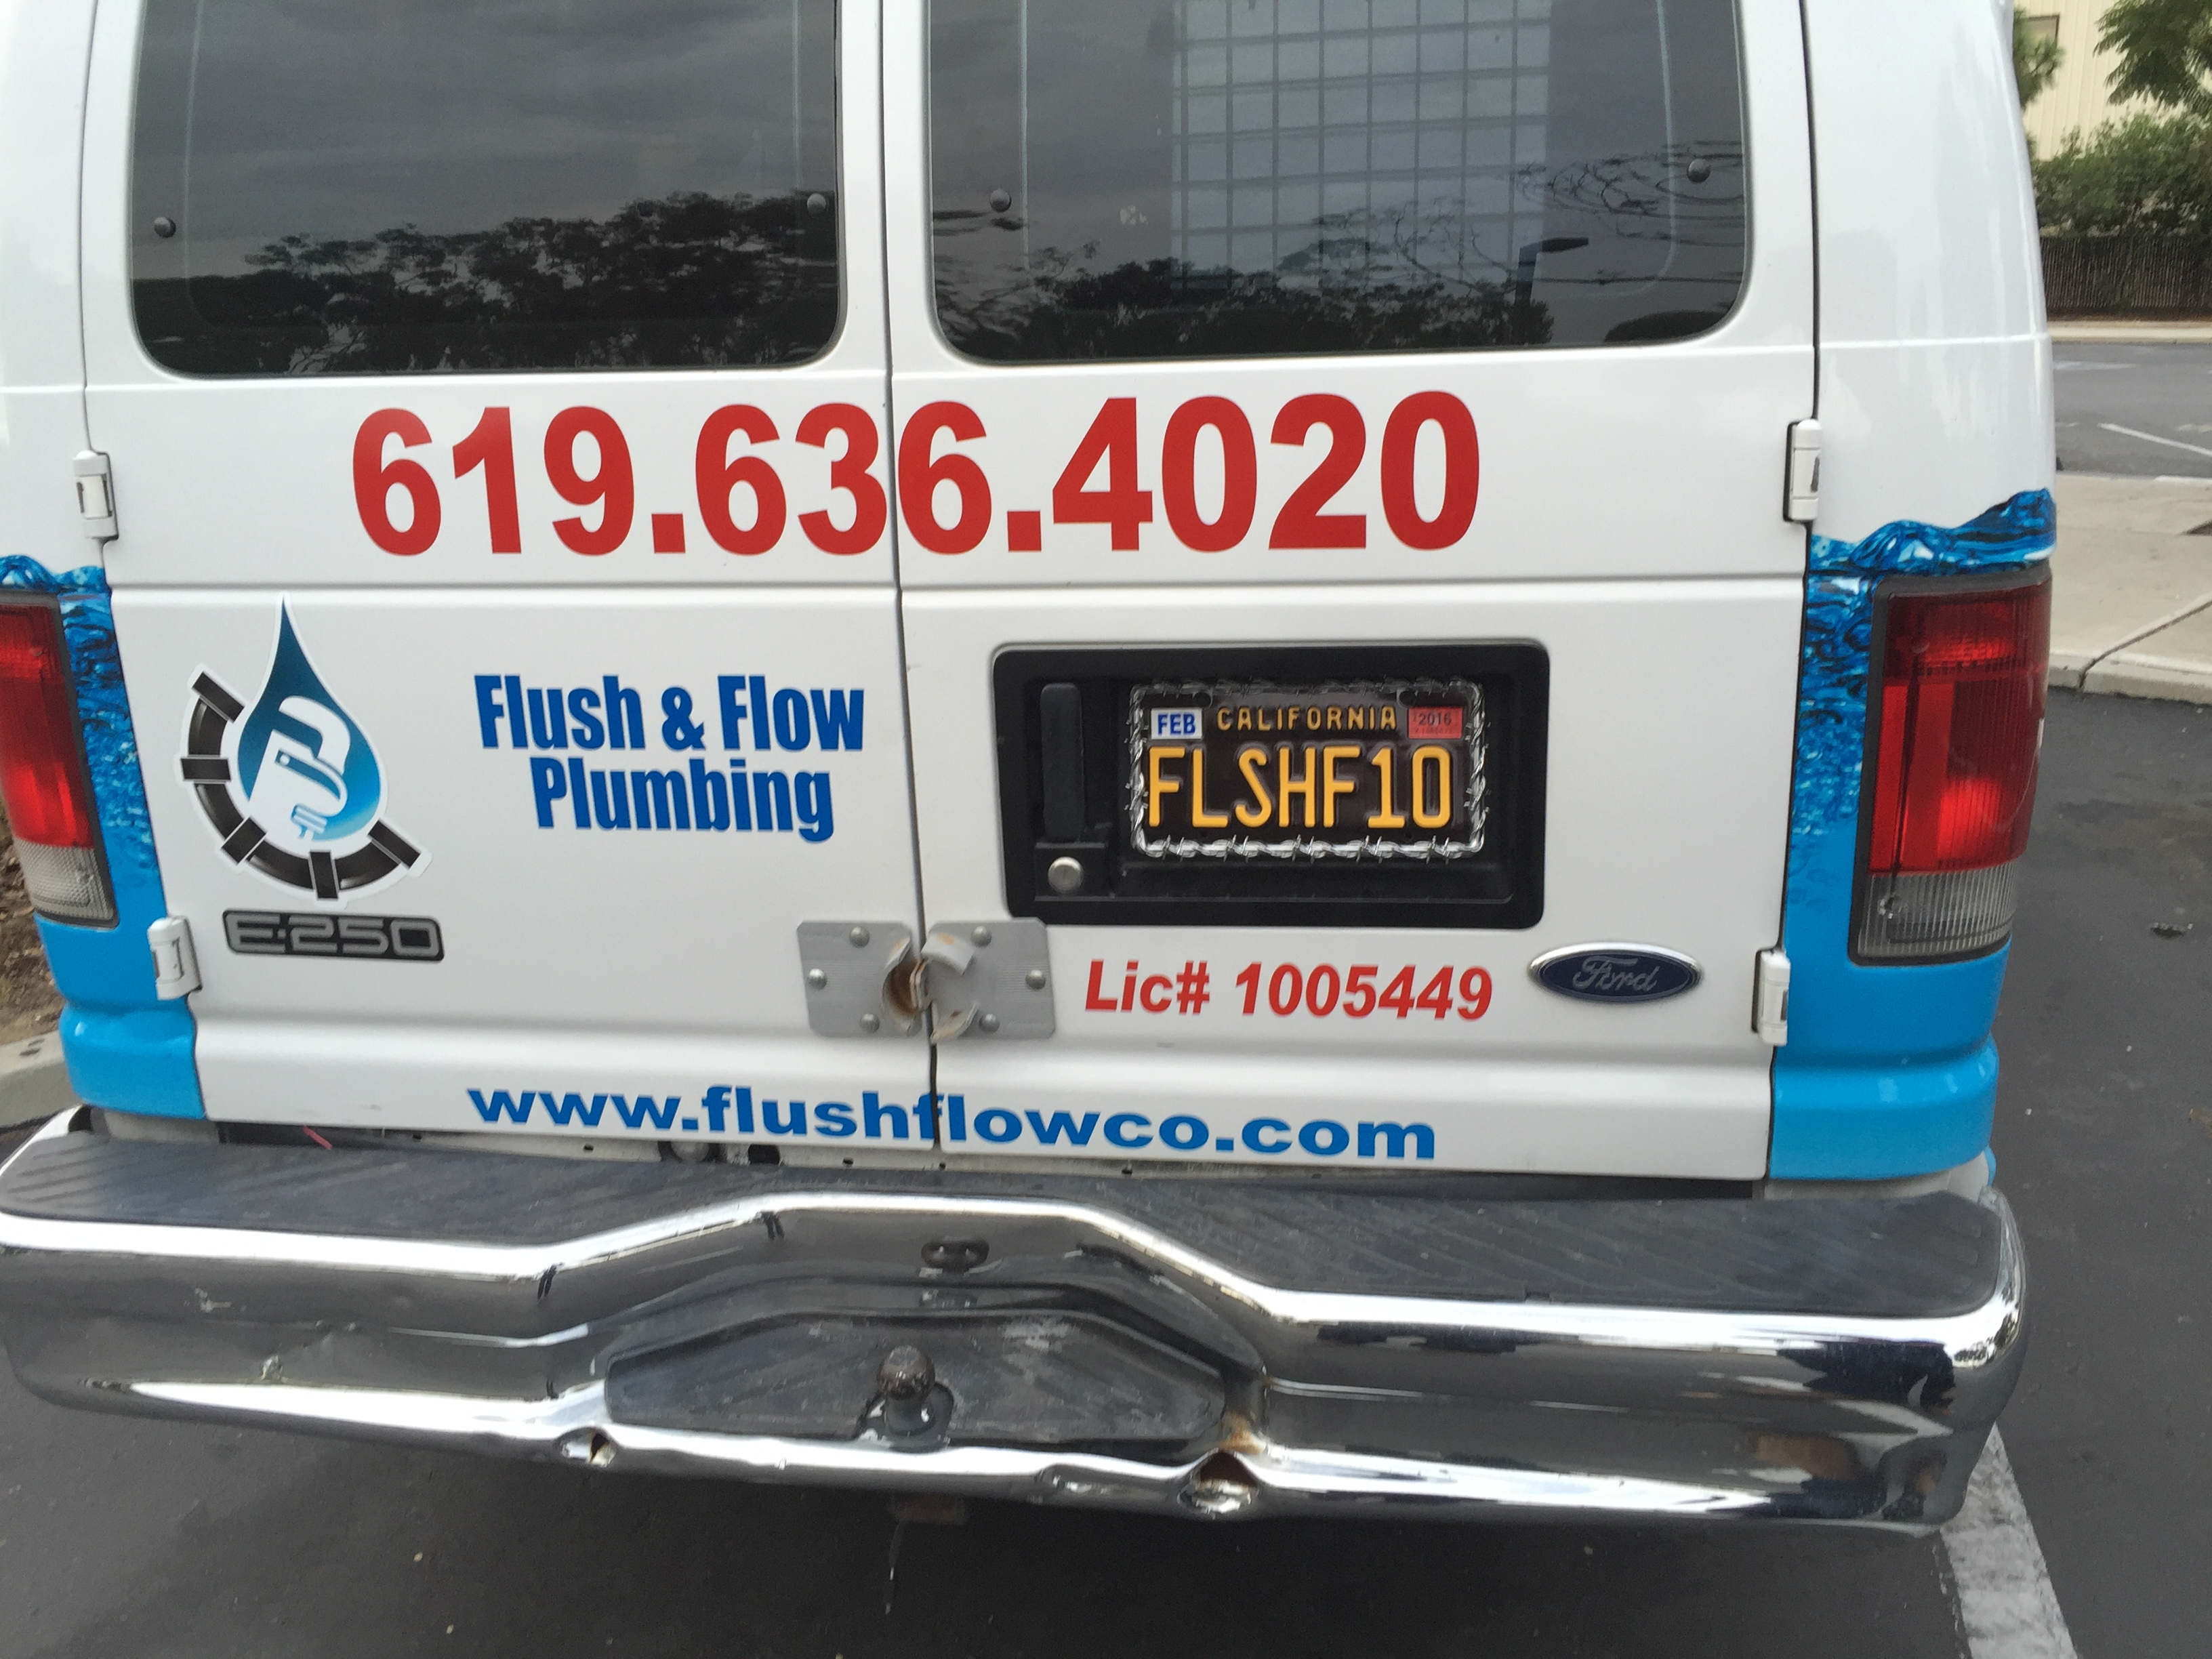 image of the Flush & Flow Plumbing and Drain Cleaning